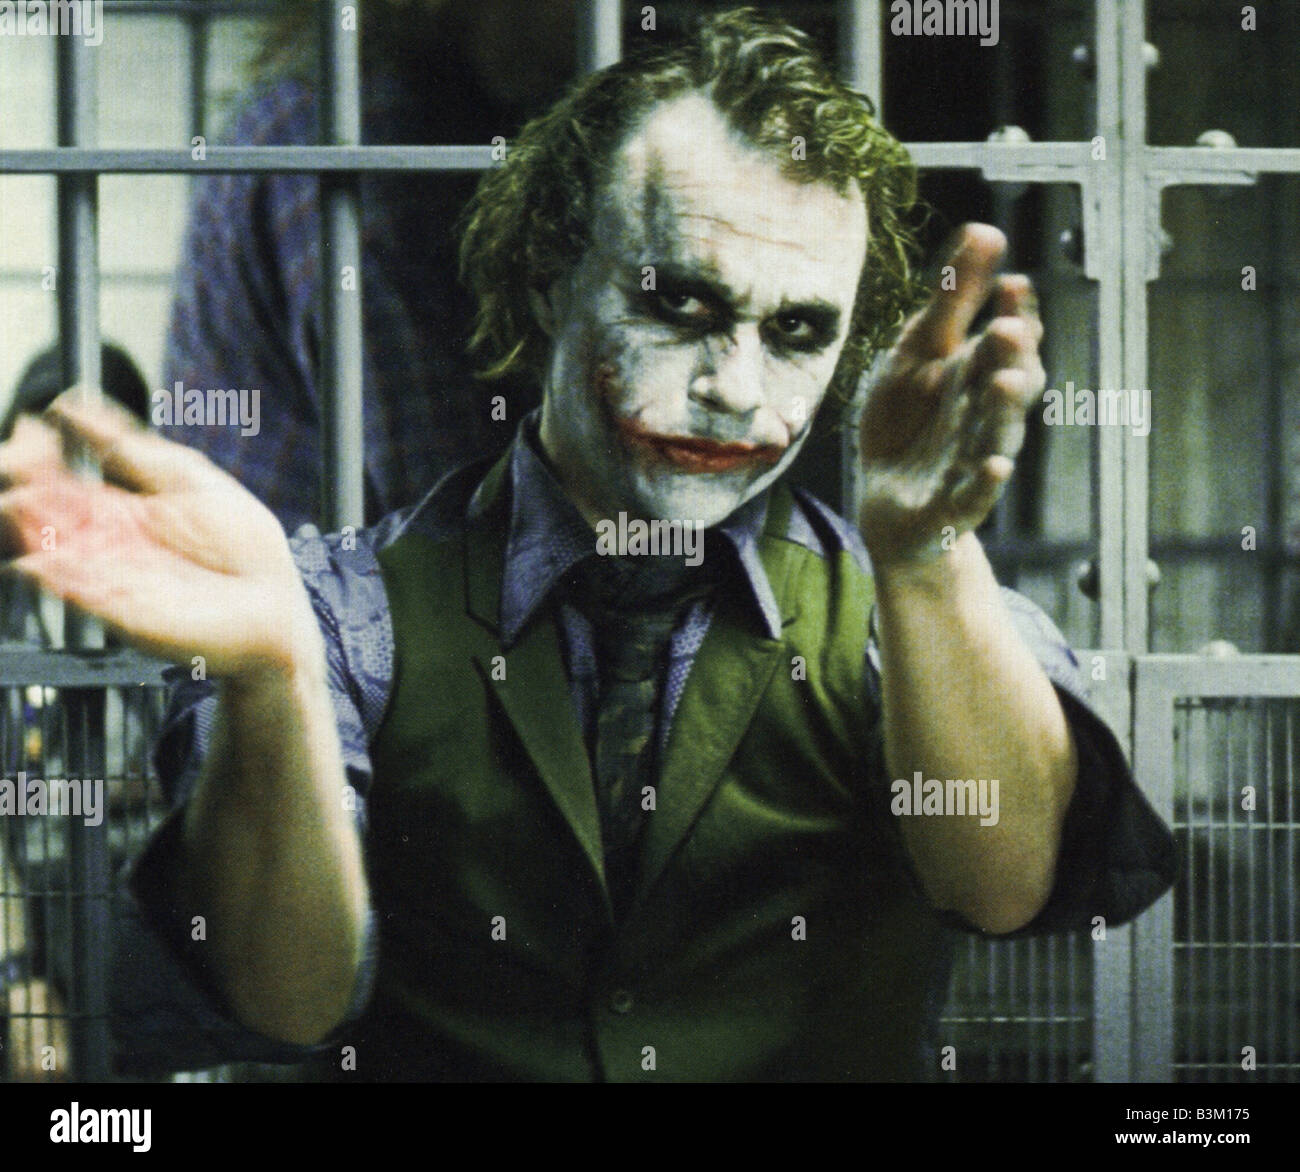 the dark knight 2008 warner film with heath ledger as the